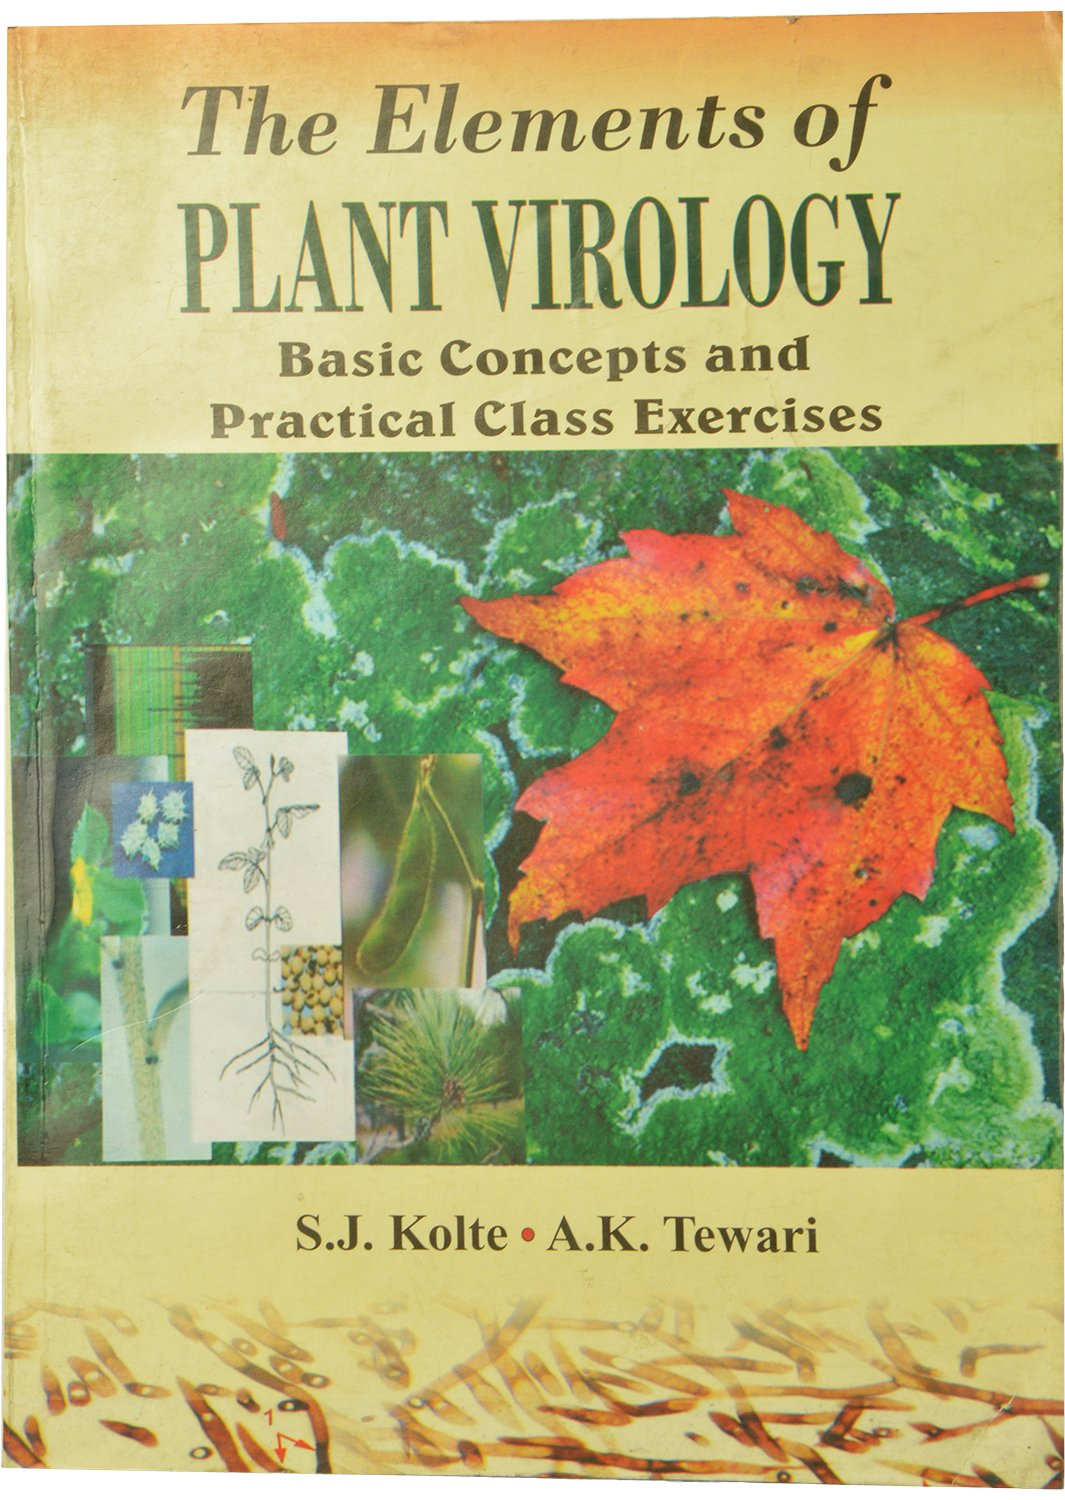 Buy The Elements of Plant Virology - Basic Concepts and Practical Class  Exercises Book Online at Low Prices in India   The Elements of Plant  Virology ...